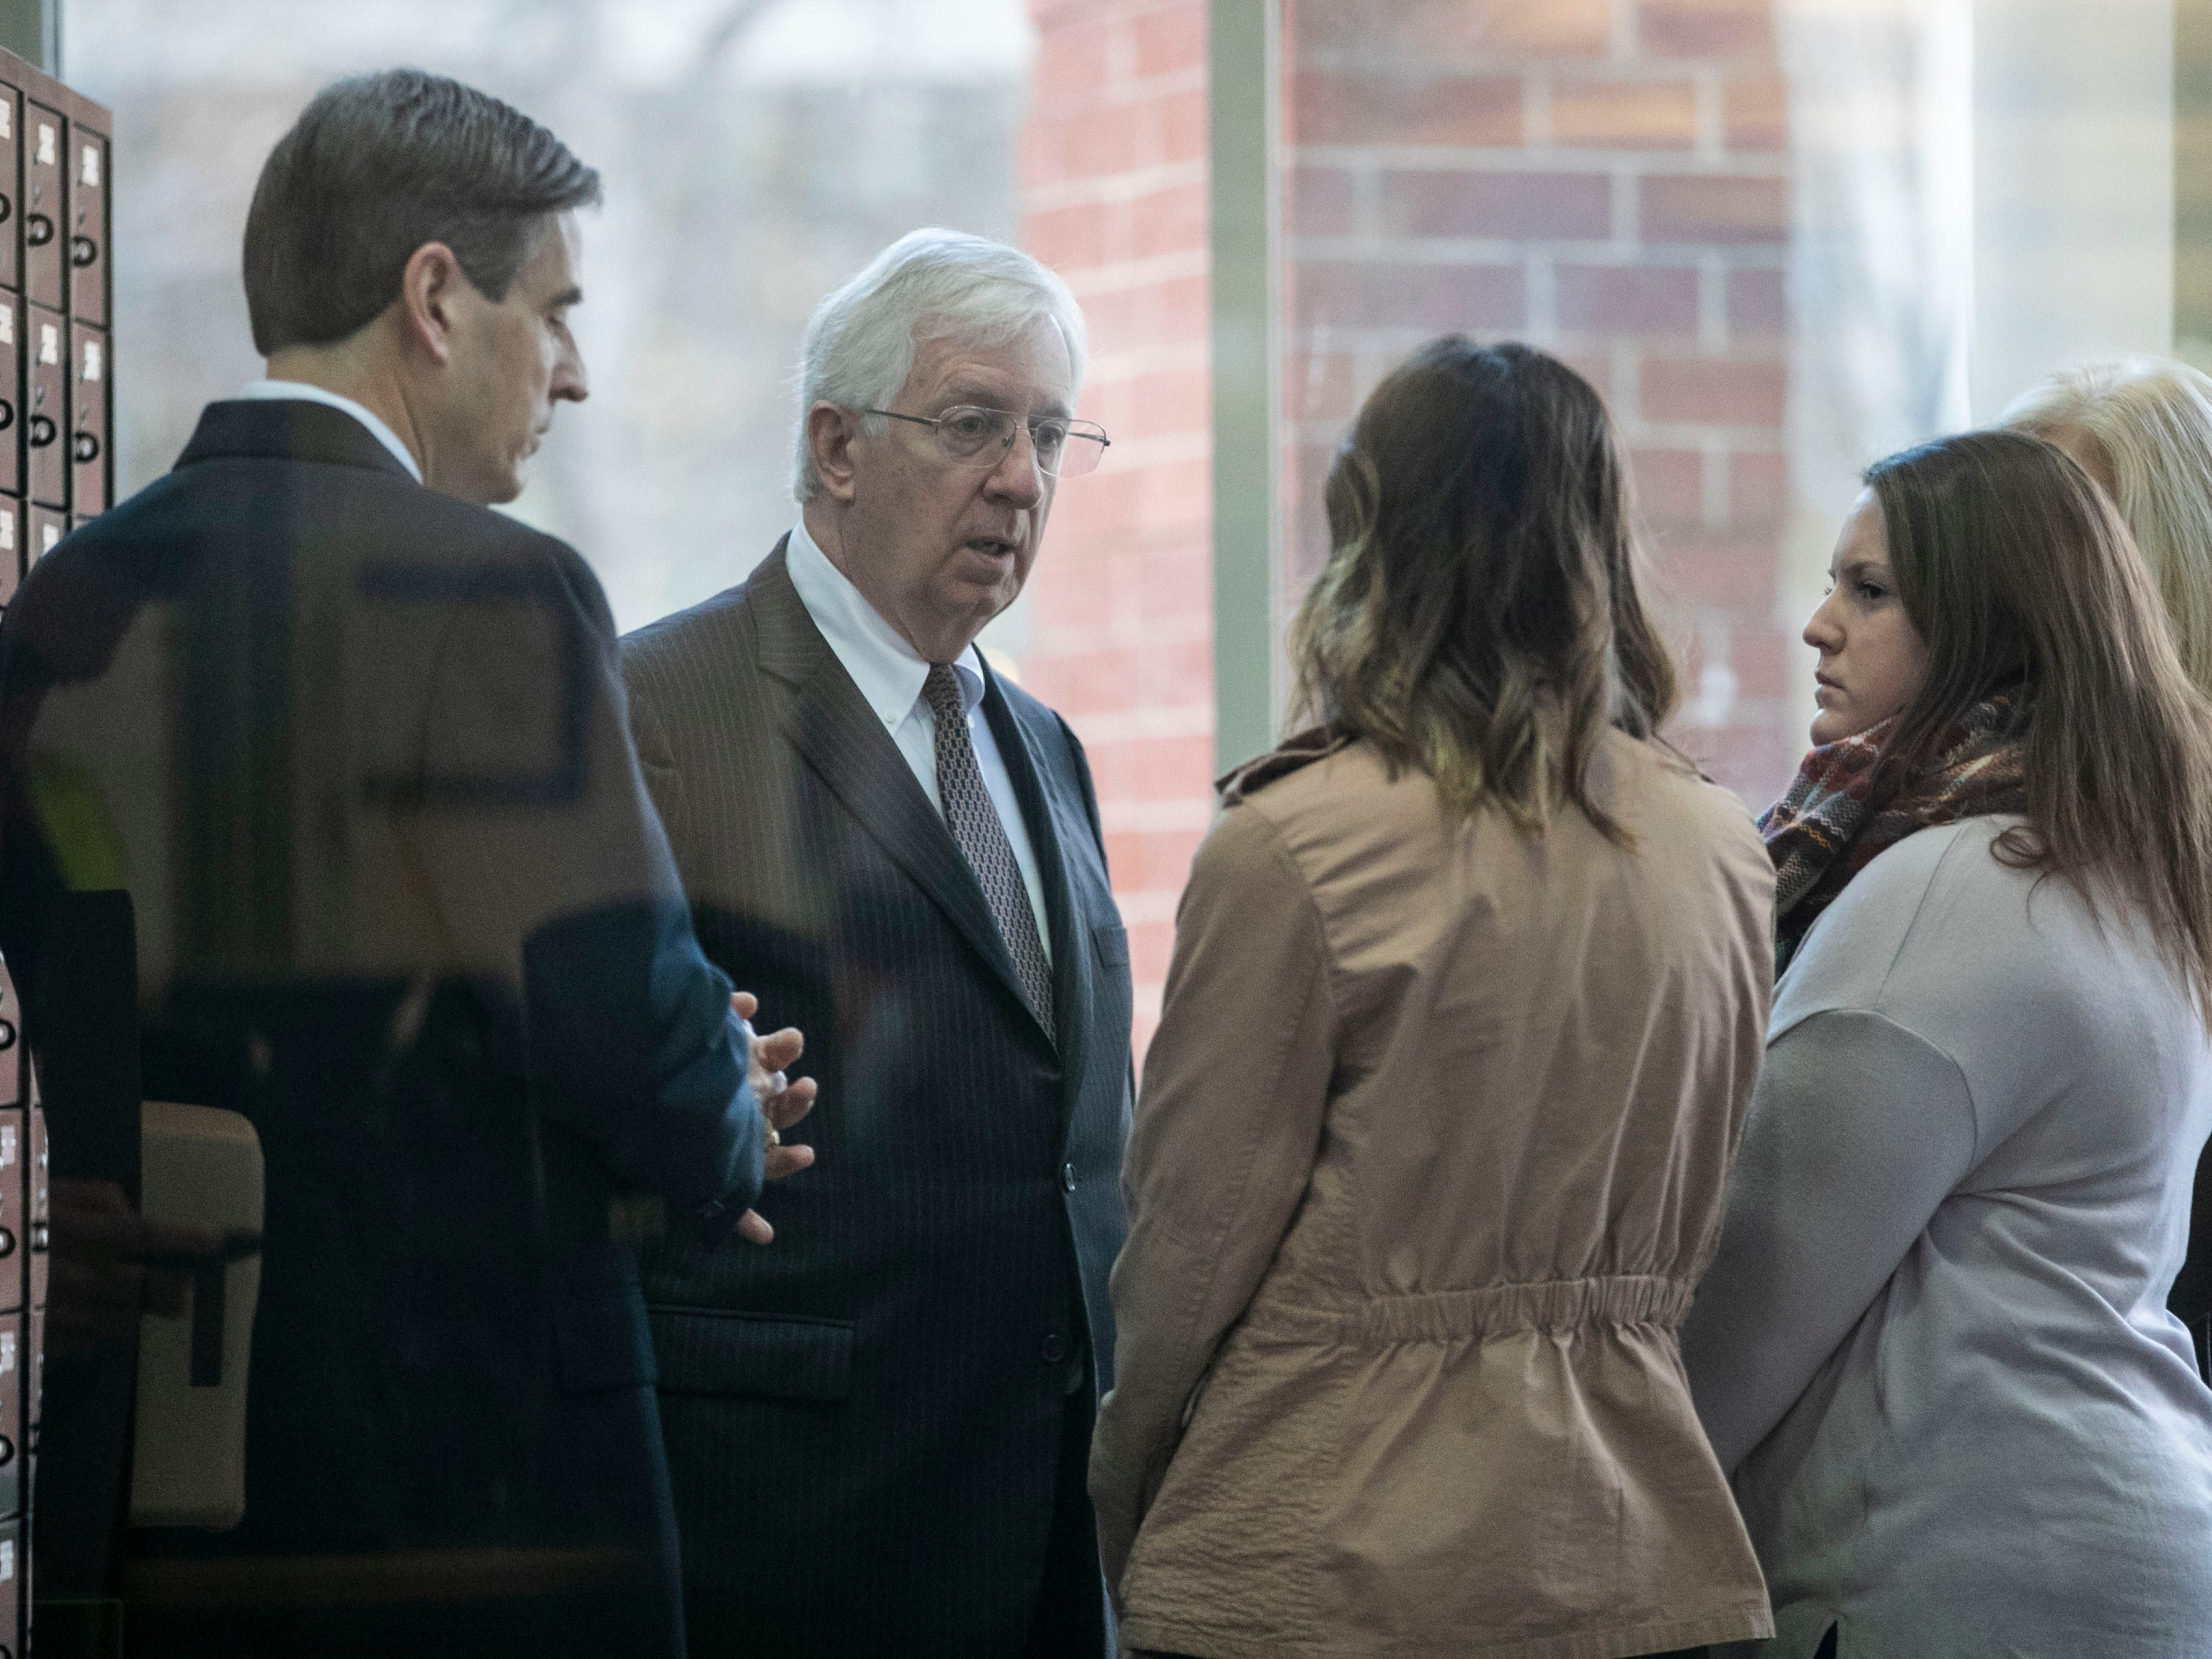 """Attorney David Lambertus talks to the family of Roger Burdette after arraignment Wednesday morning. A judge denied Lambertus' request to lower the $200,000 bond for Burdette. His next court date is set for January. Burdette is accused of killing Louisville Metro Police Detective Deidre """"Dee Dee"""" Mengedoht after ramming her stopped police car while he was driving an MSD semitruck on I-64 Christmas Eve. Dec. 26, 2018"""